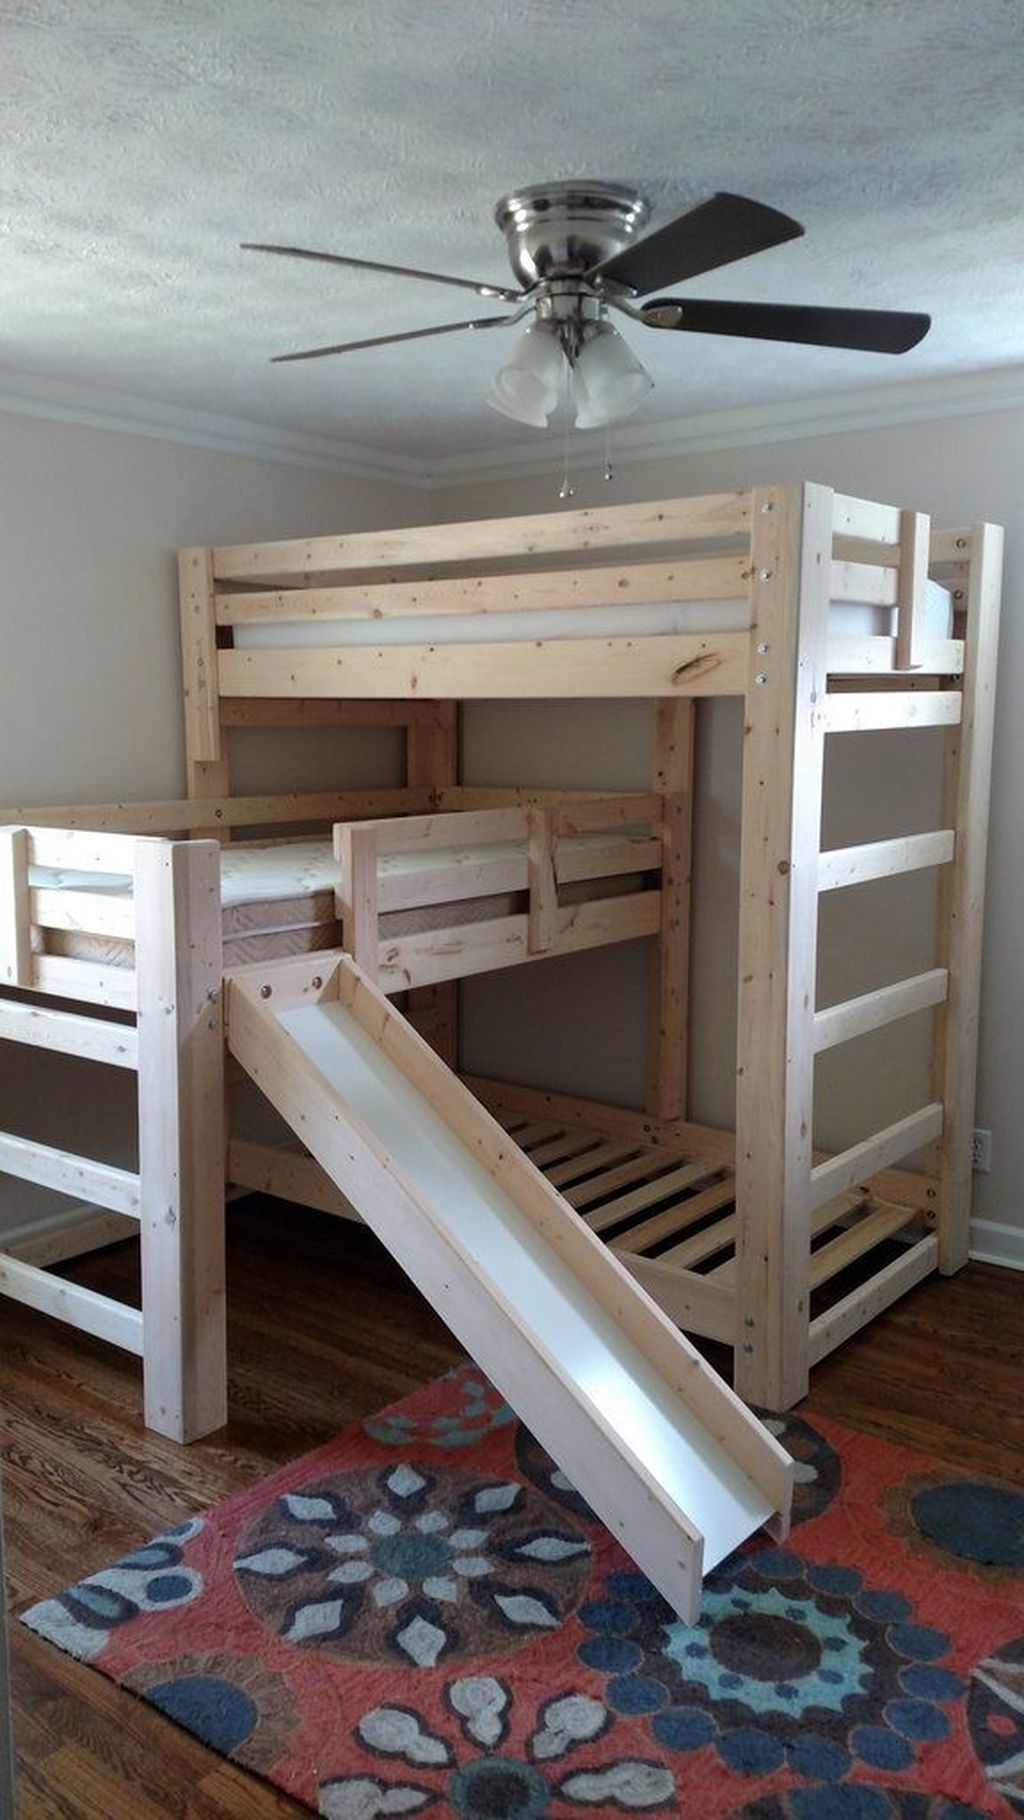 50 Amazing Ideas For Bunk Bed With Slide That Everyone Will Adore